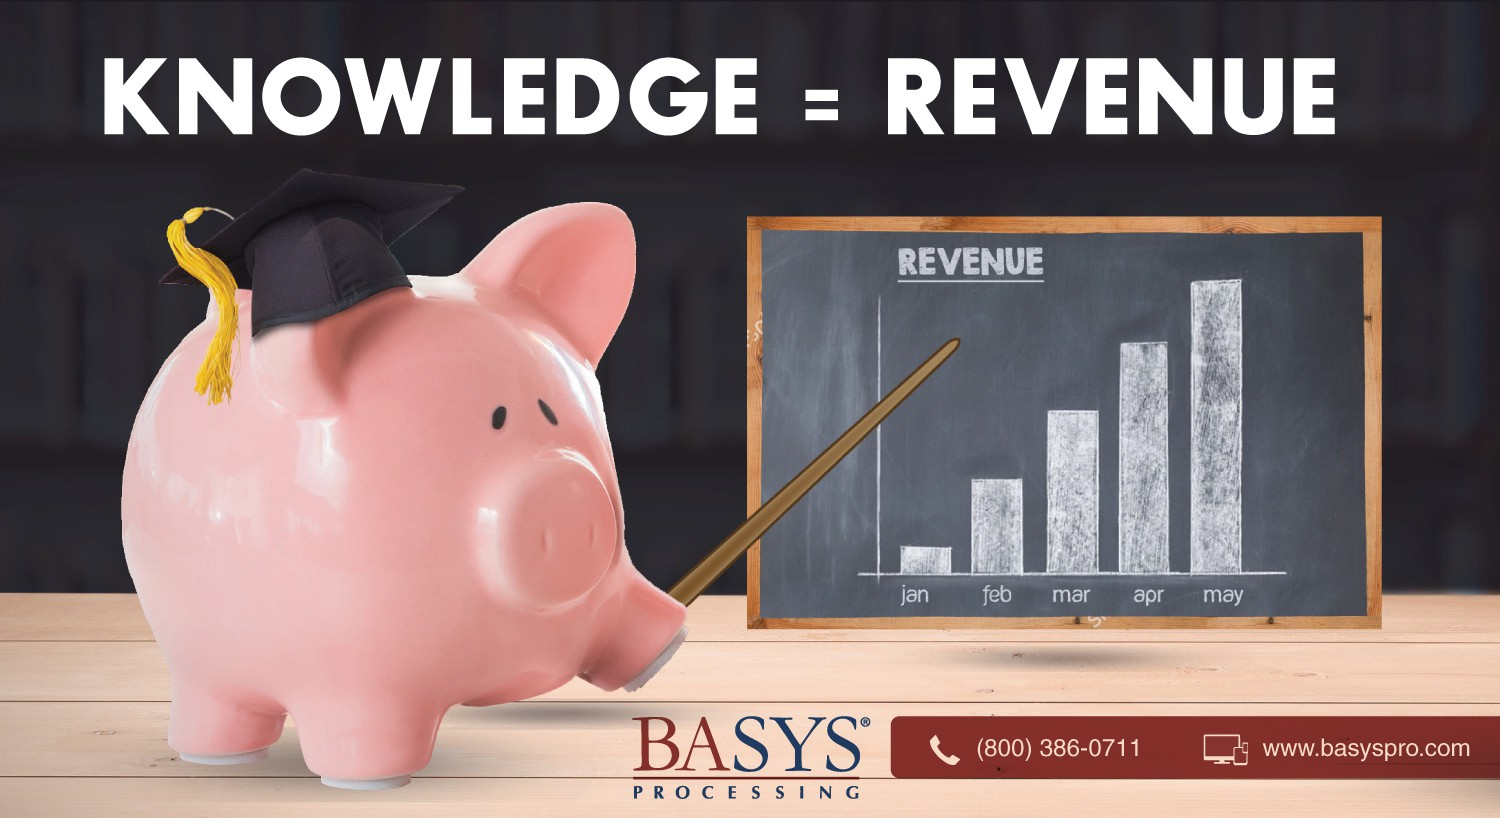 BASYS - Direct Mail - Bank Education Series - Knowledge = Revenue